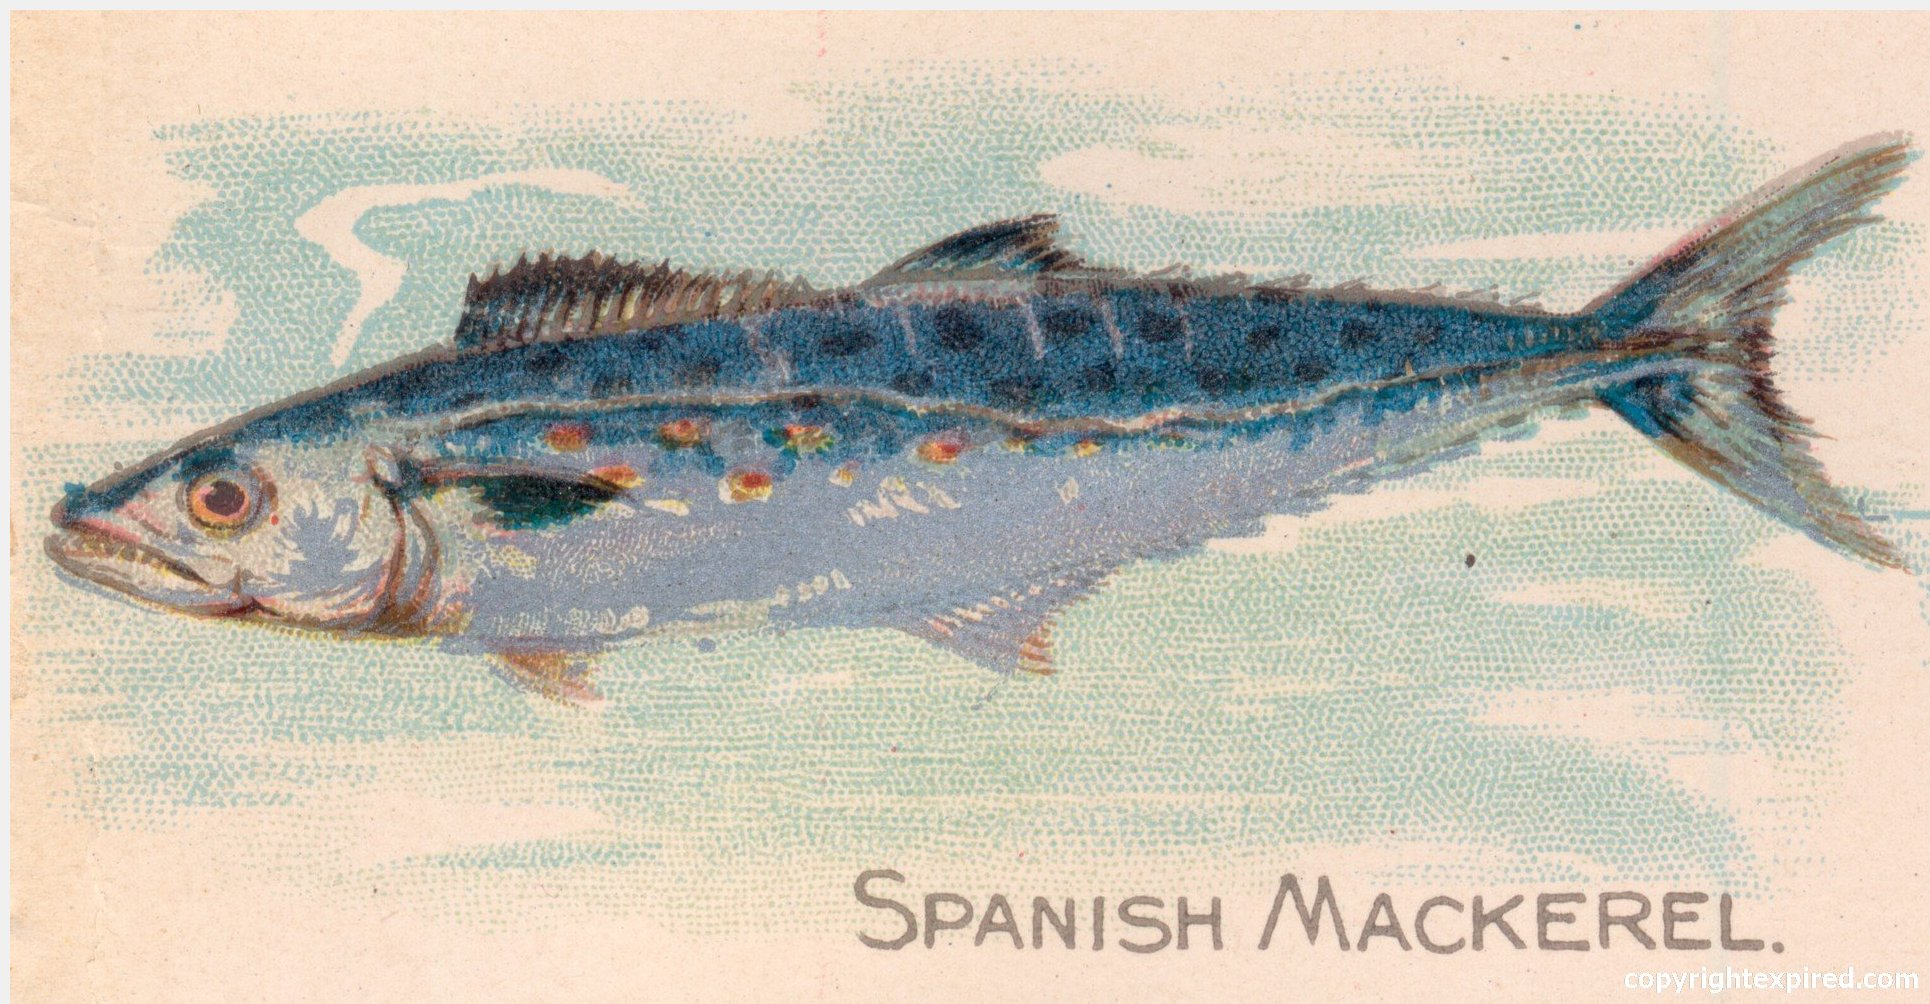 ... for Crafts, School, Brochures, Clip Art - Spanish Mackerel